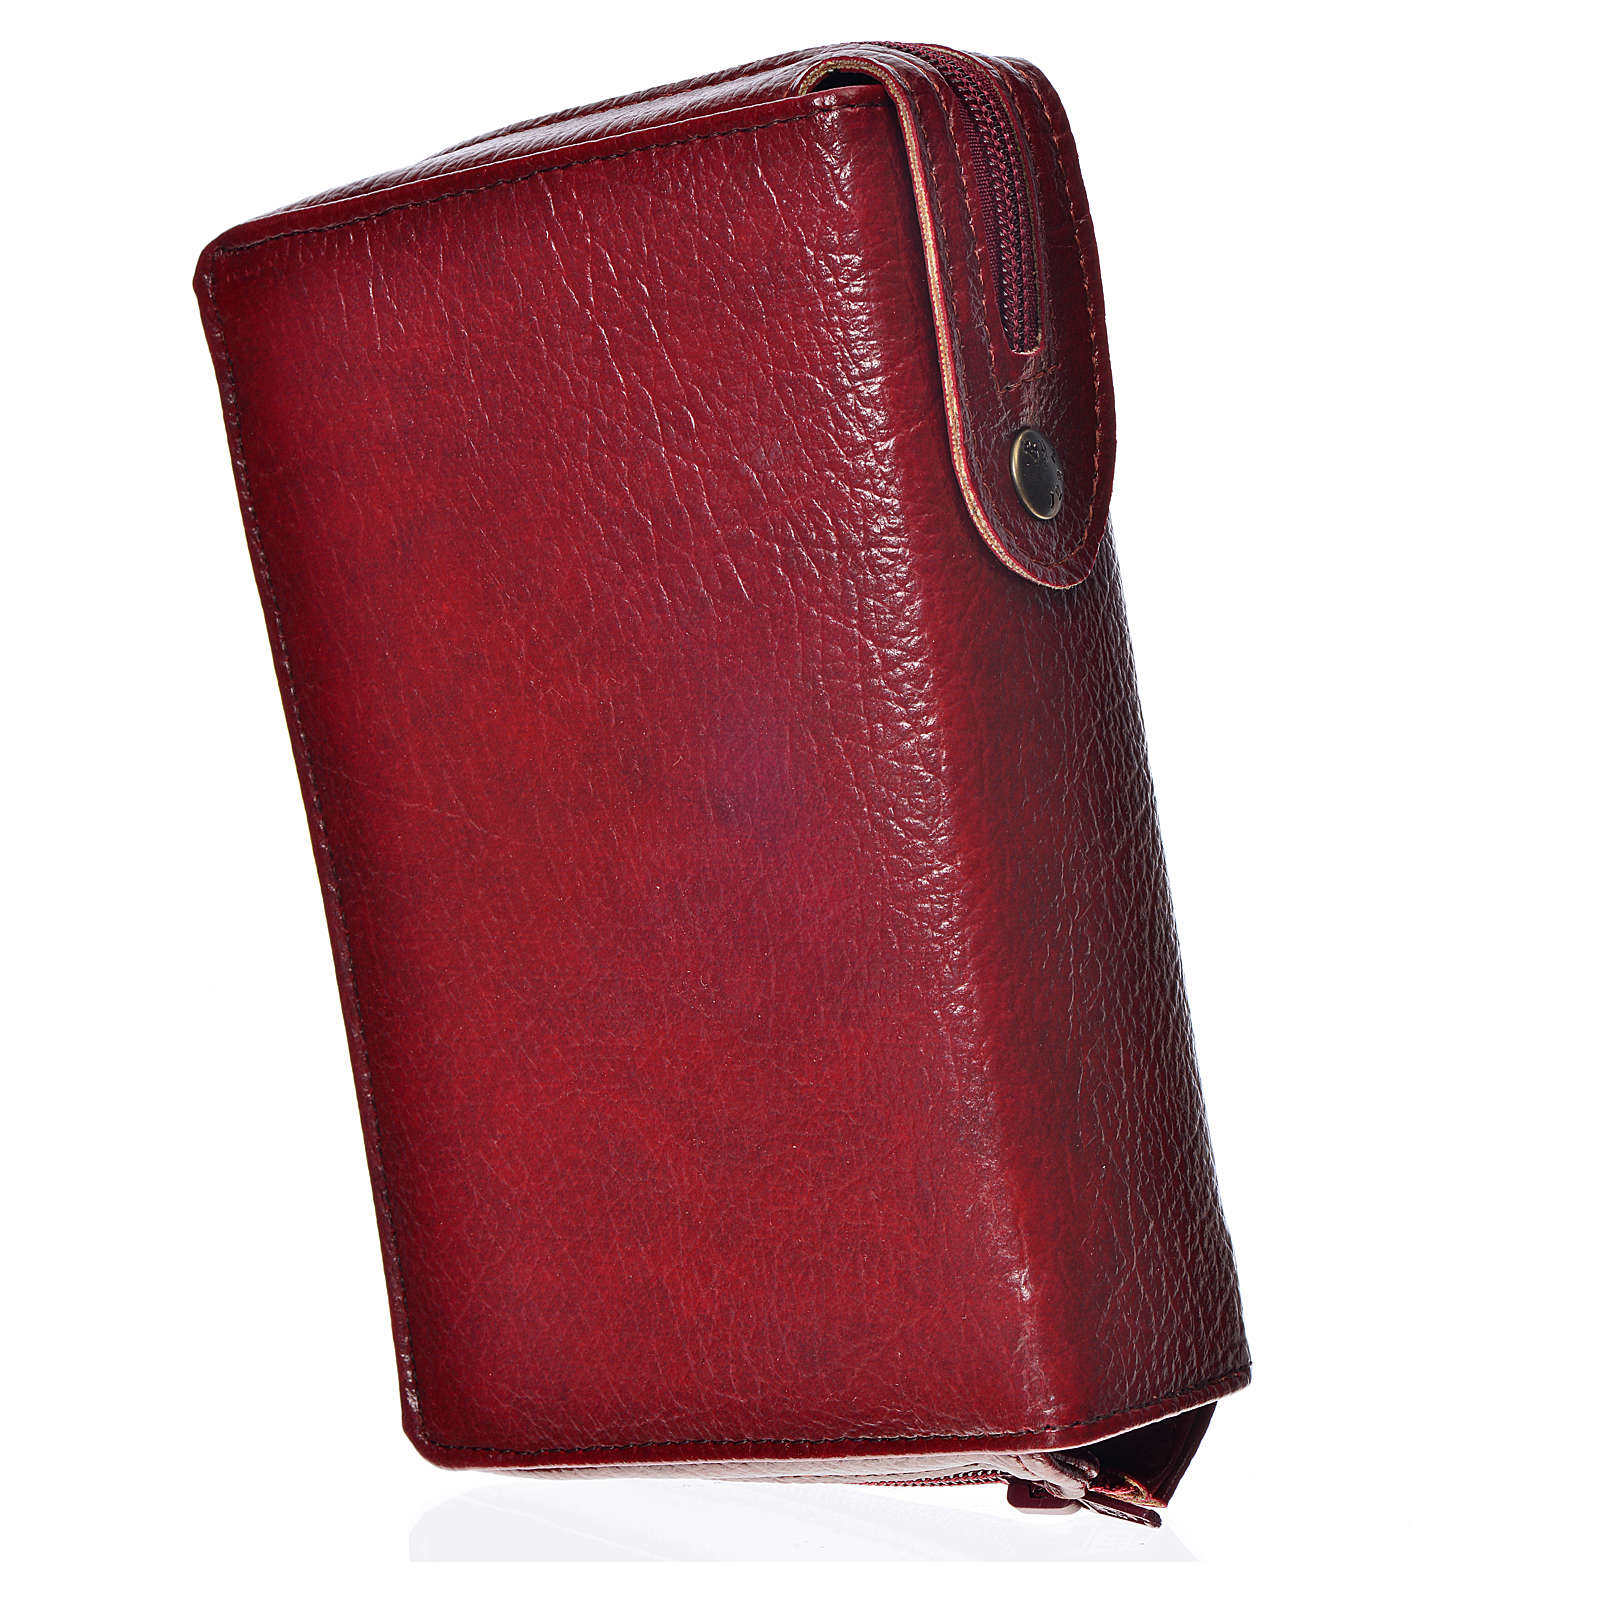 Divine office cover, burgundy bonded leather Our Lady 4